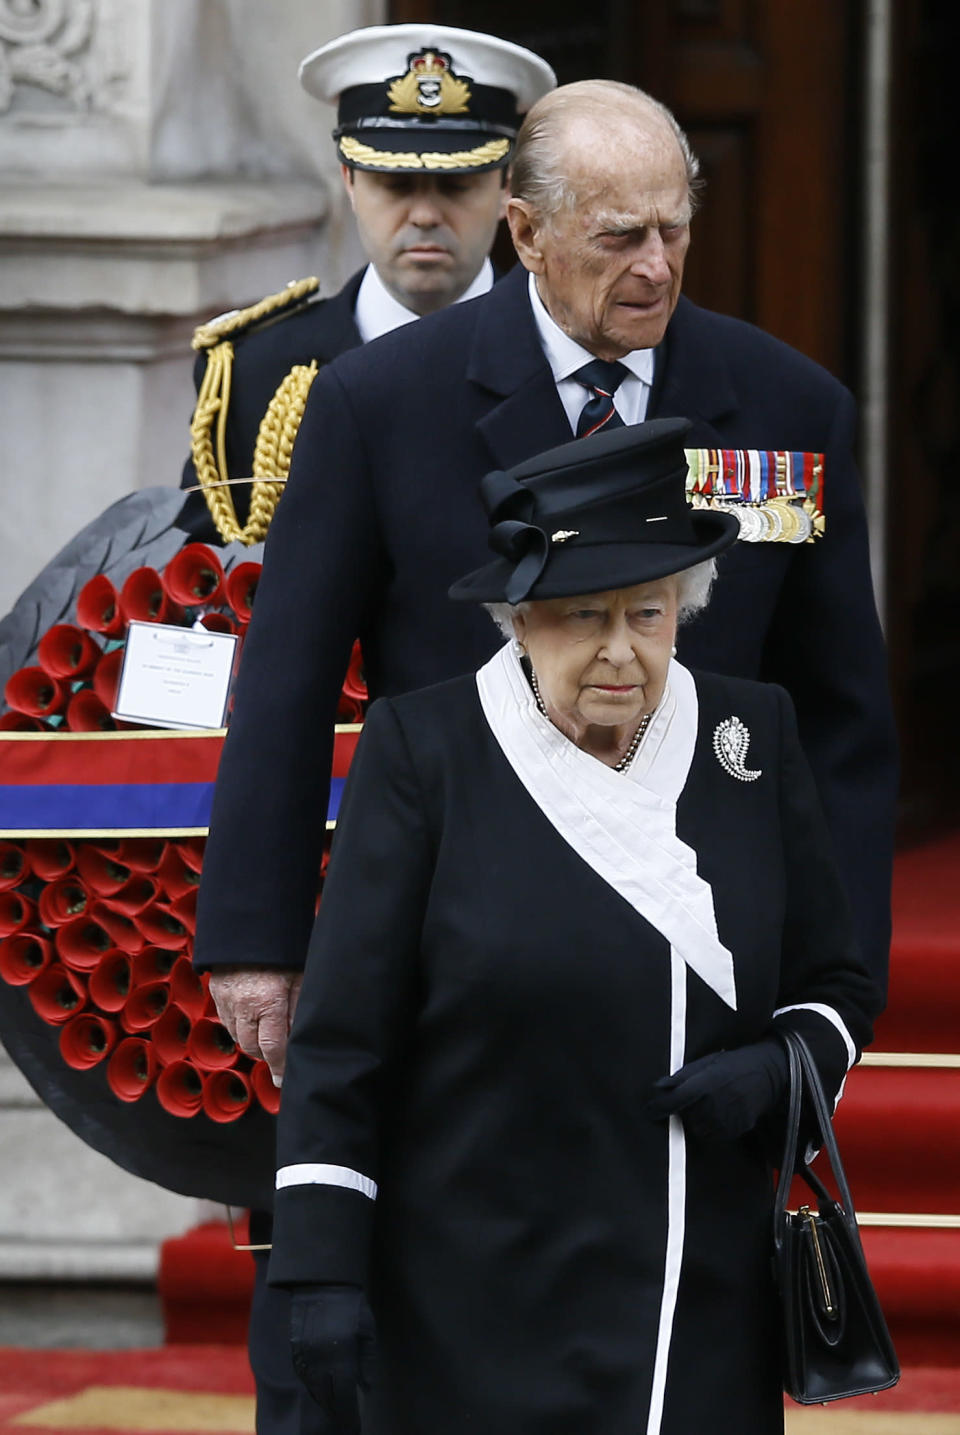 FILE - In this file photo dated Saturday, April 25, 2015, Britain's Queen Elizabeth II and Prince Philip, arrive to attend a ceremony at the Cenotaph to commemorate ANZAC Day and the Centenary of the Gallipoli Campaign in Whitehall, London. The ANZAC Day memorial Saturday marks the 100th anniversary of the 1915 Gallipoli landings, the first major military action fought by the Australian and New Zealand Army Corps during World War I. Prince Philip who died Friday April 9, 2021, aged 99, lived through a tumultuous century of war and upheavals, but he helped forge a period of stability for the British monarchy under his wife, Queen Elizabeth II. (AP Photo/Kirsty Wigglesworth, FILE)